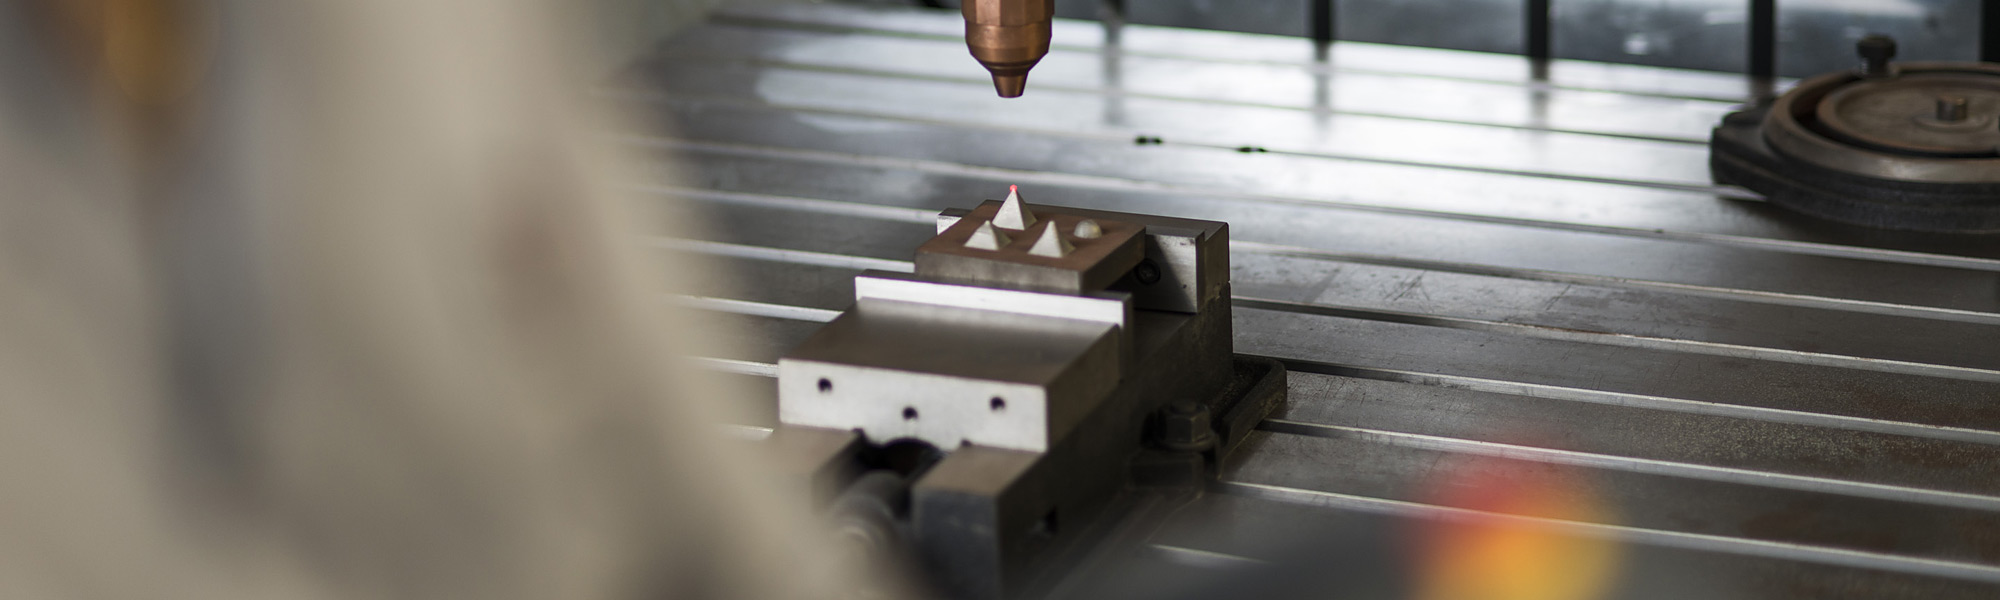 3D metal printer producing three aluminium pyramids on a metal plate with a laser pointing on one of the pyramids.